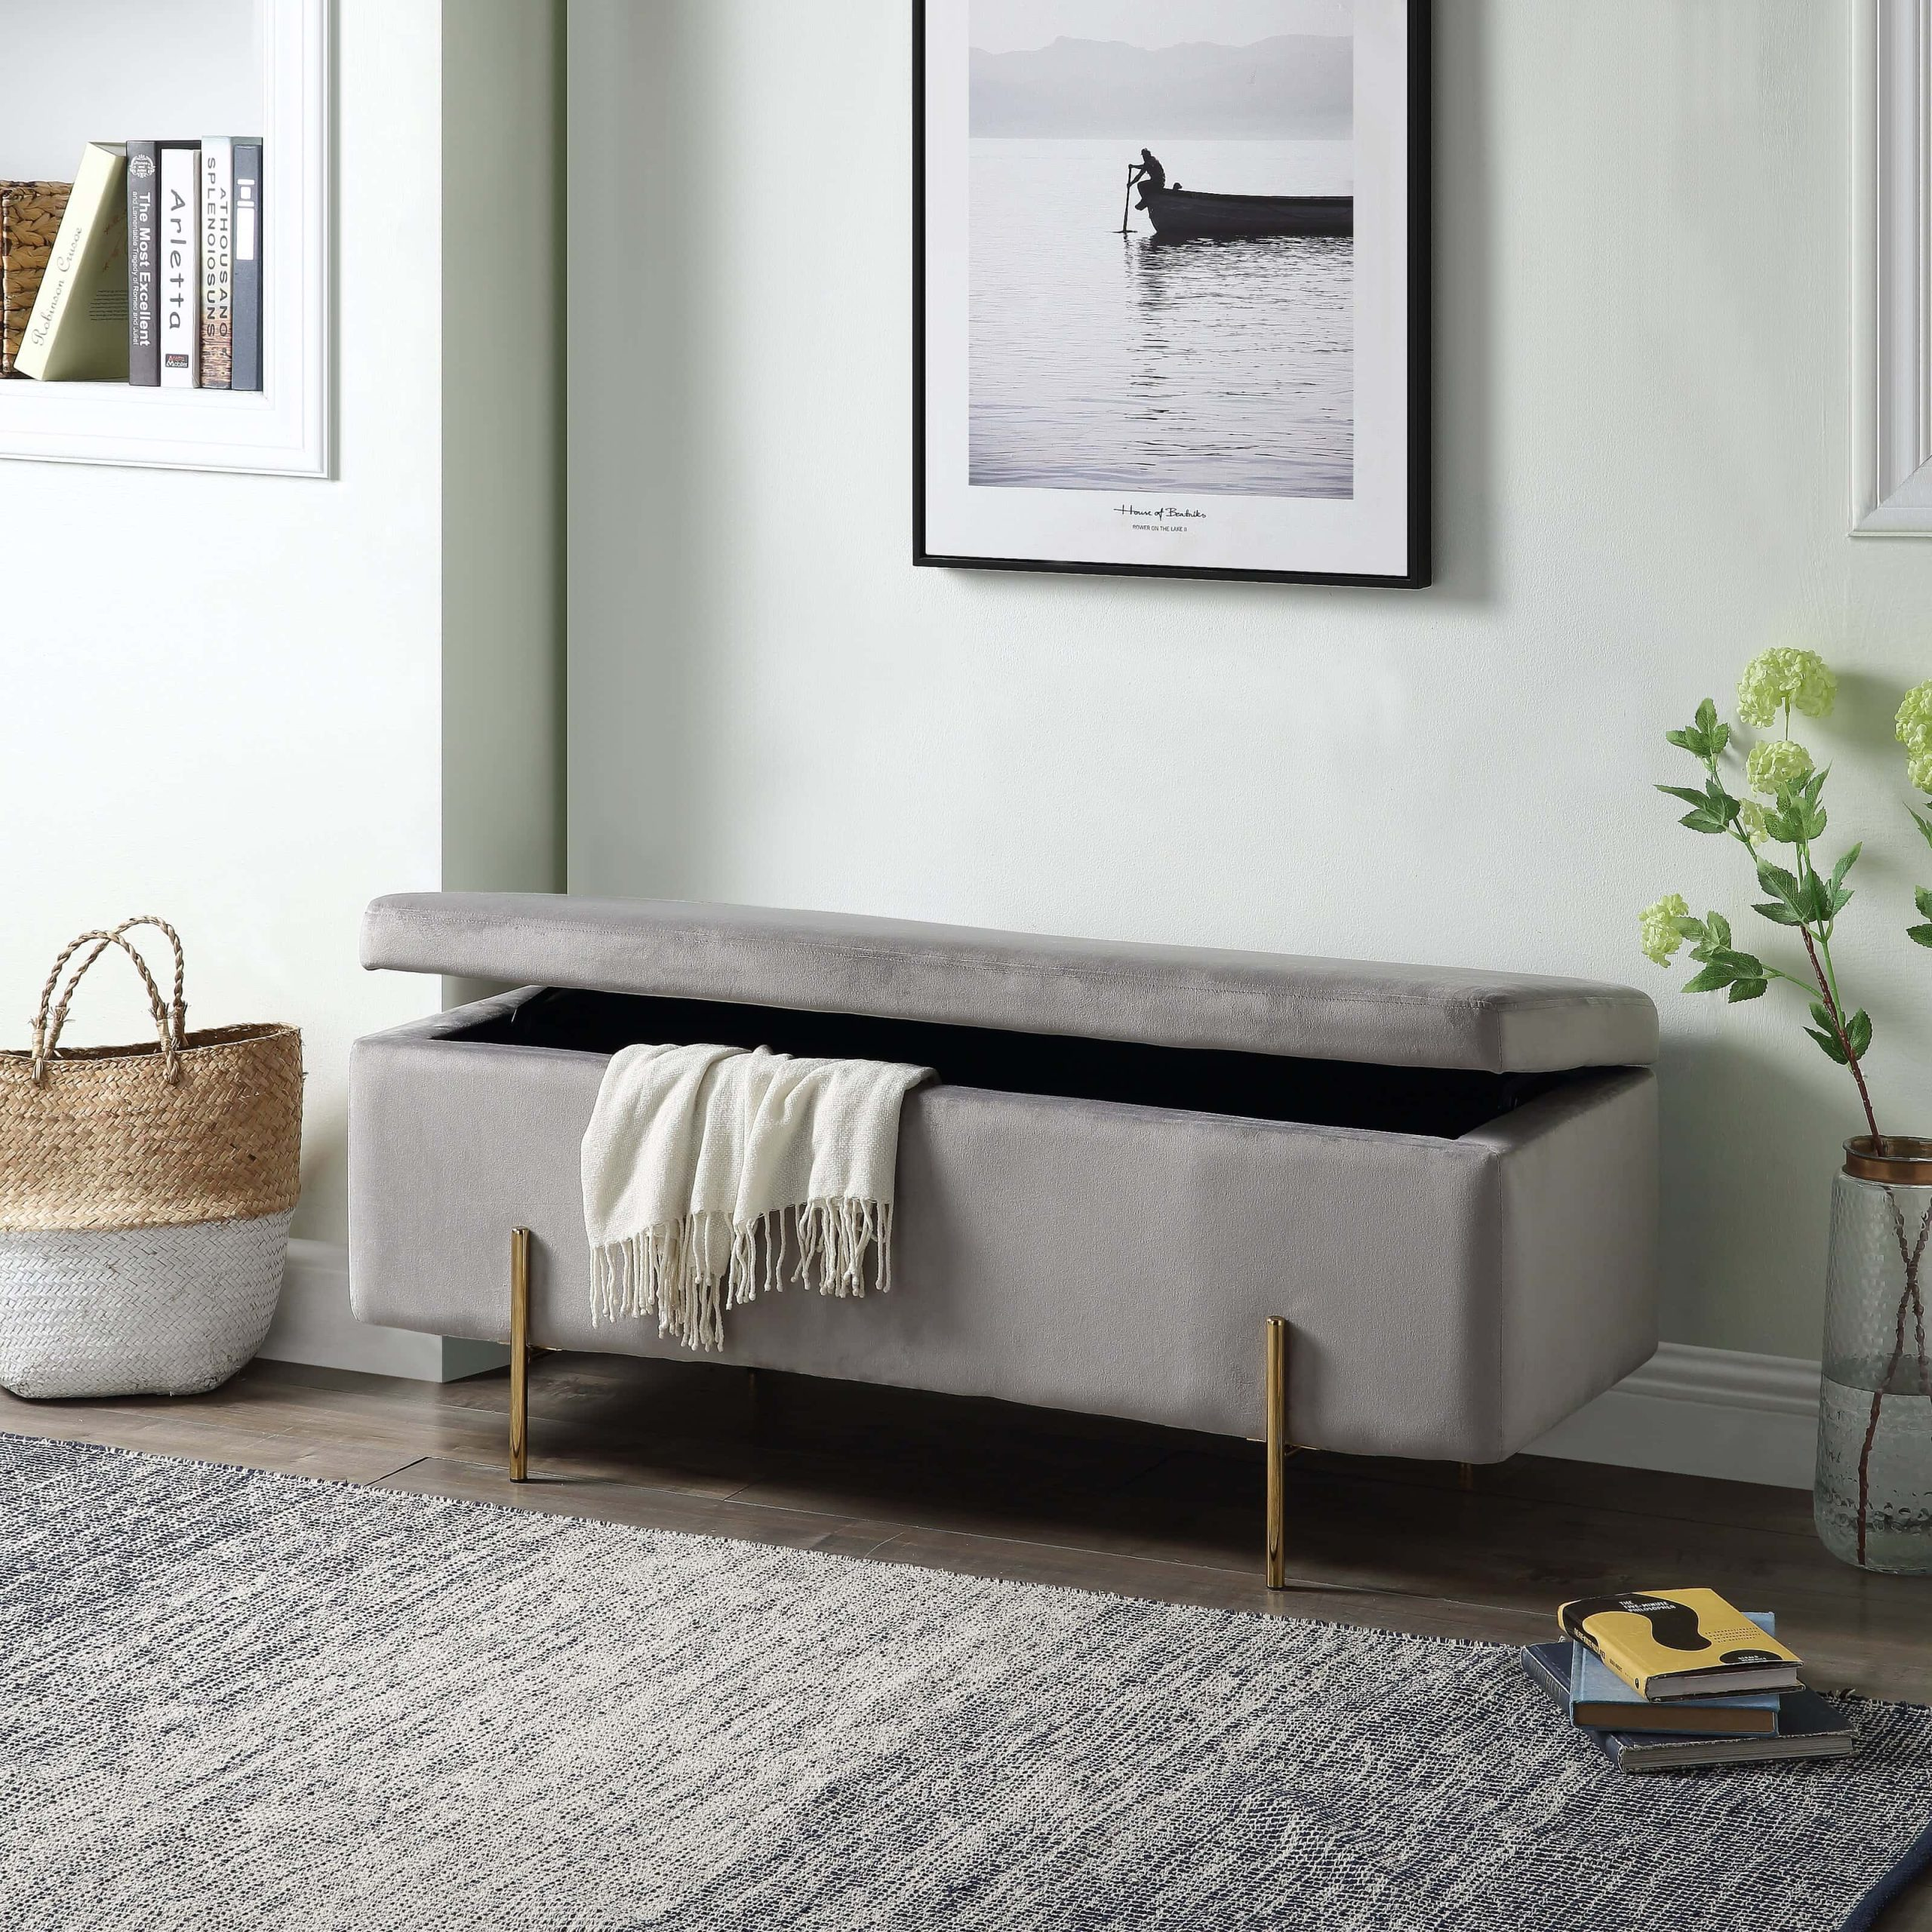 Upholstered bench for storage in an organized entryway